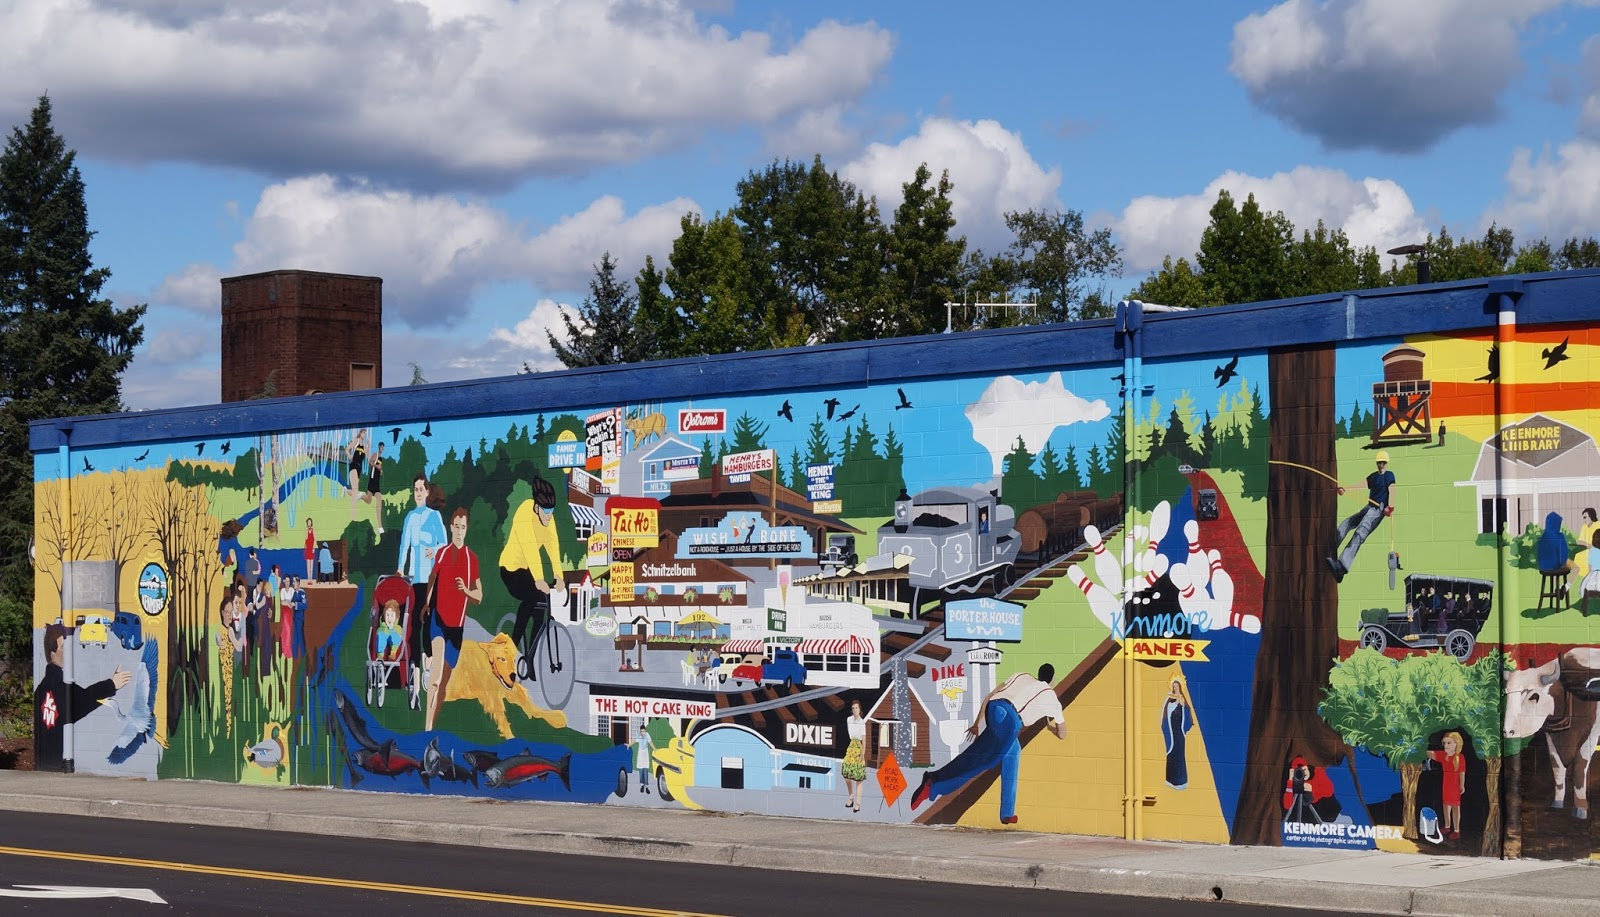 shoreline area news kenmore mural dedicated it covers the entire west facing exterior wall of the st vincent de paul building at 7304 bothell way in kenmore